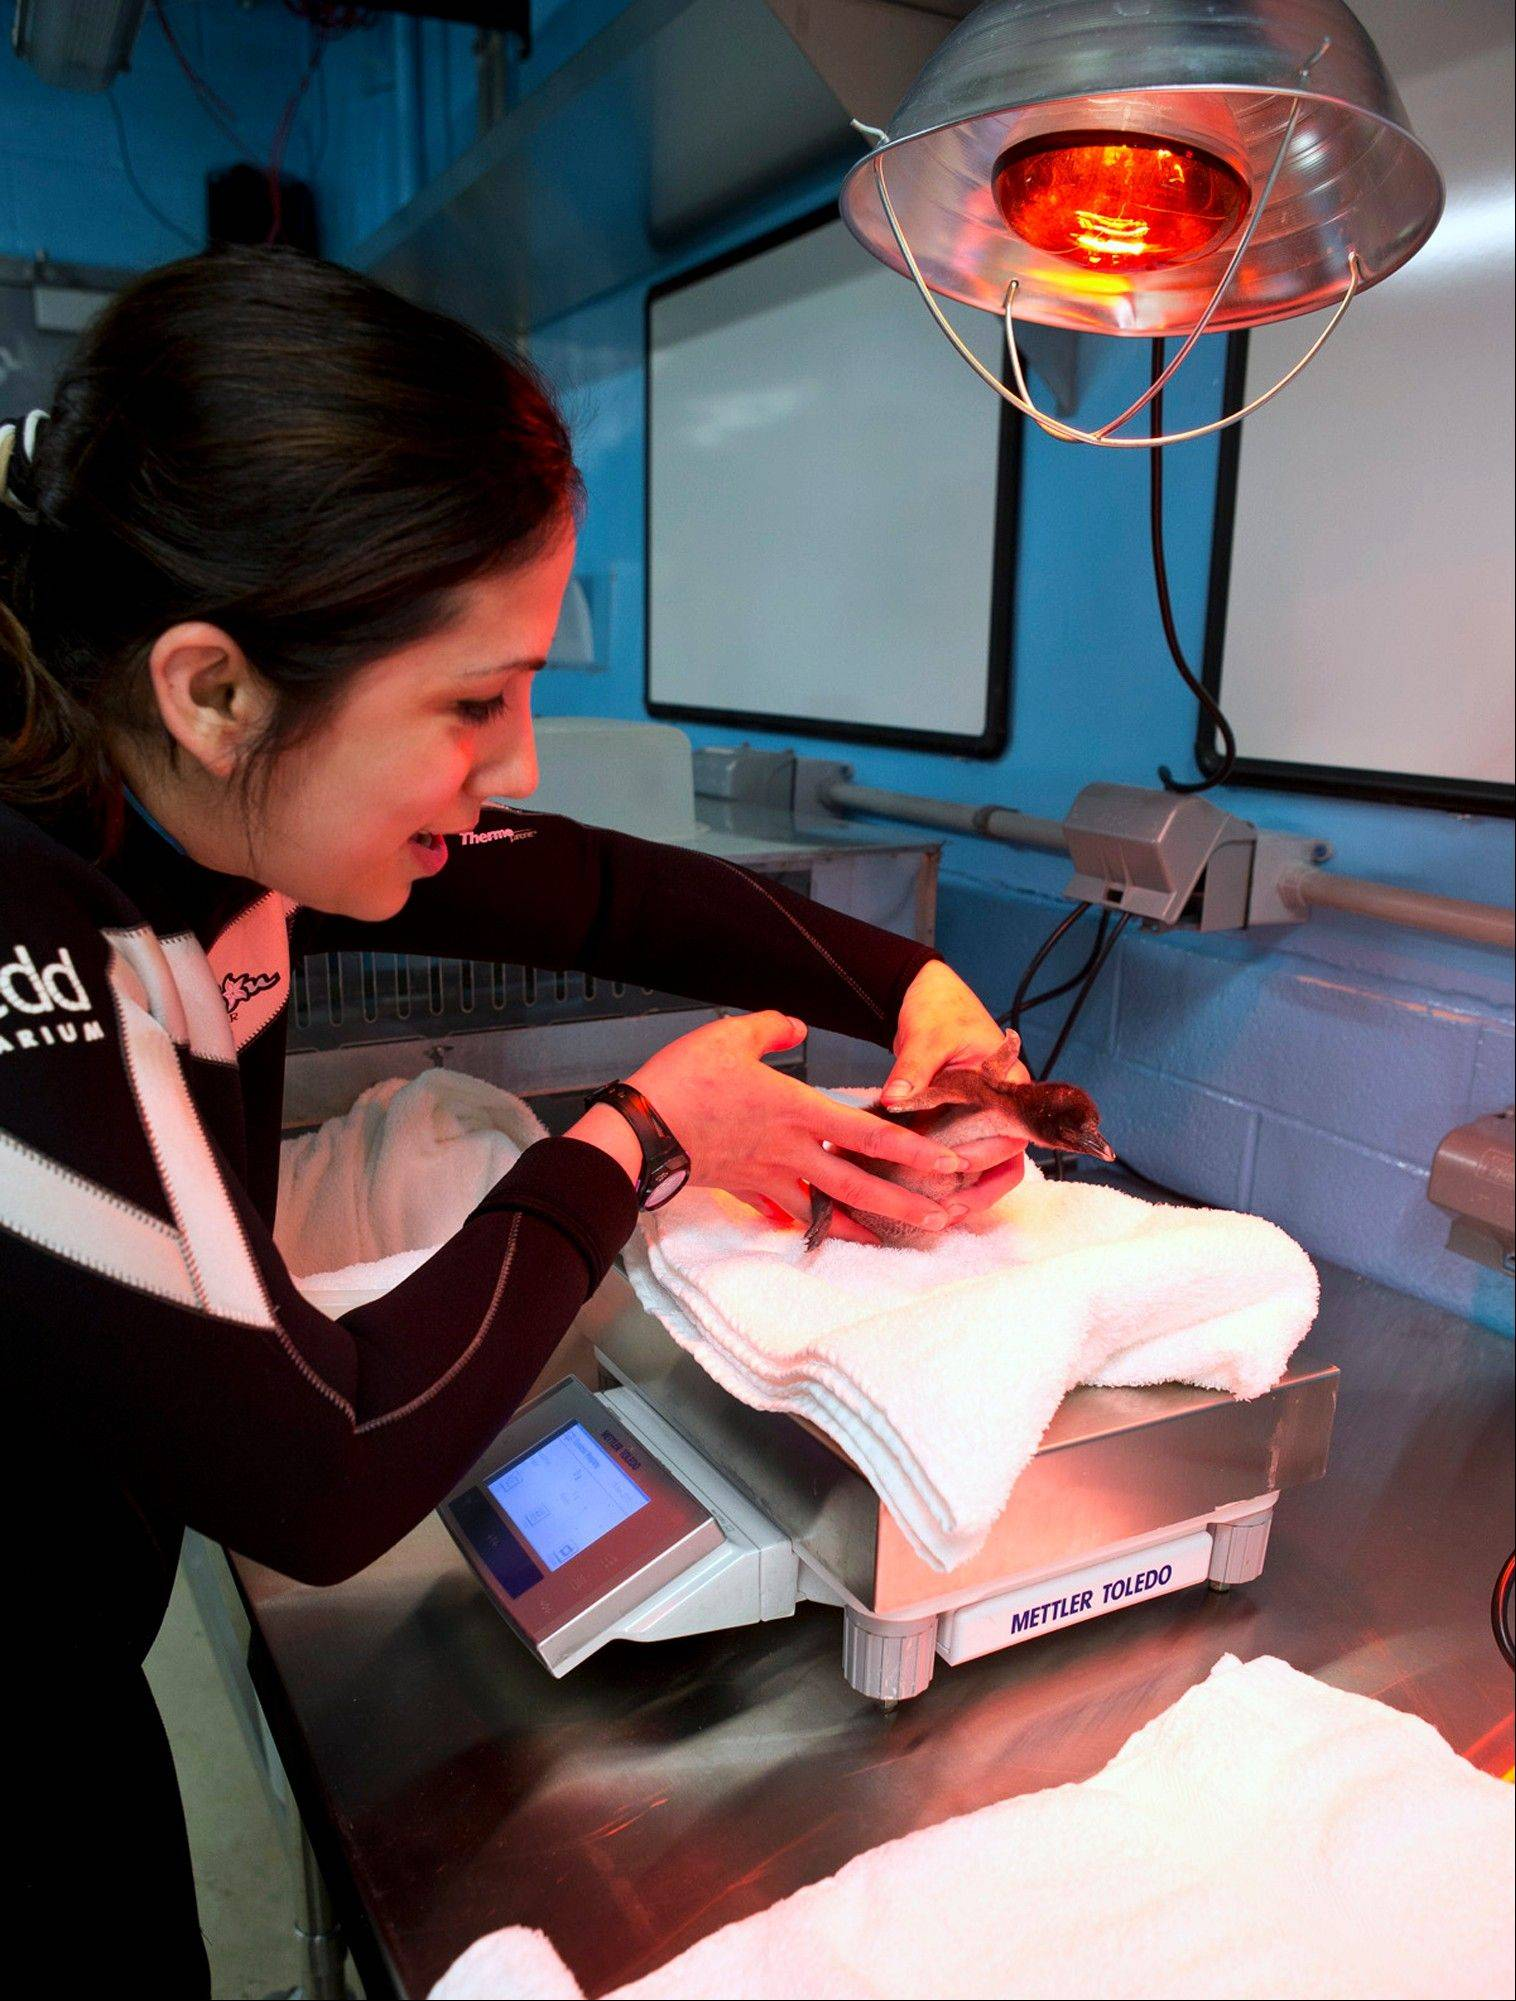 This June 18, 2013 photo provided by the Shedd Aquarium in Chicago shows marine mammal trainer Christi Sterling checking the weight of a rockhopper penguin chick that was hatched at the aquarium June 12, 2013. Shedd animal care workers are observing and weighing the chick daily. The chick weighed 75 grams when it was born and is gaining about 40 grams every day. The chick's gender hasn't been determined yet.